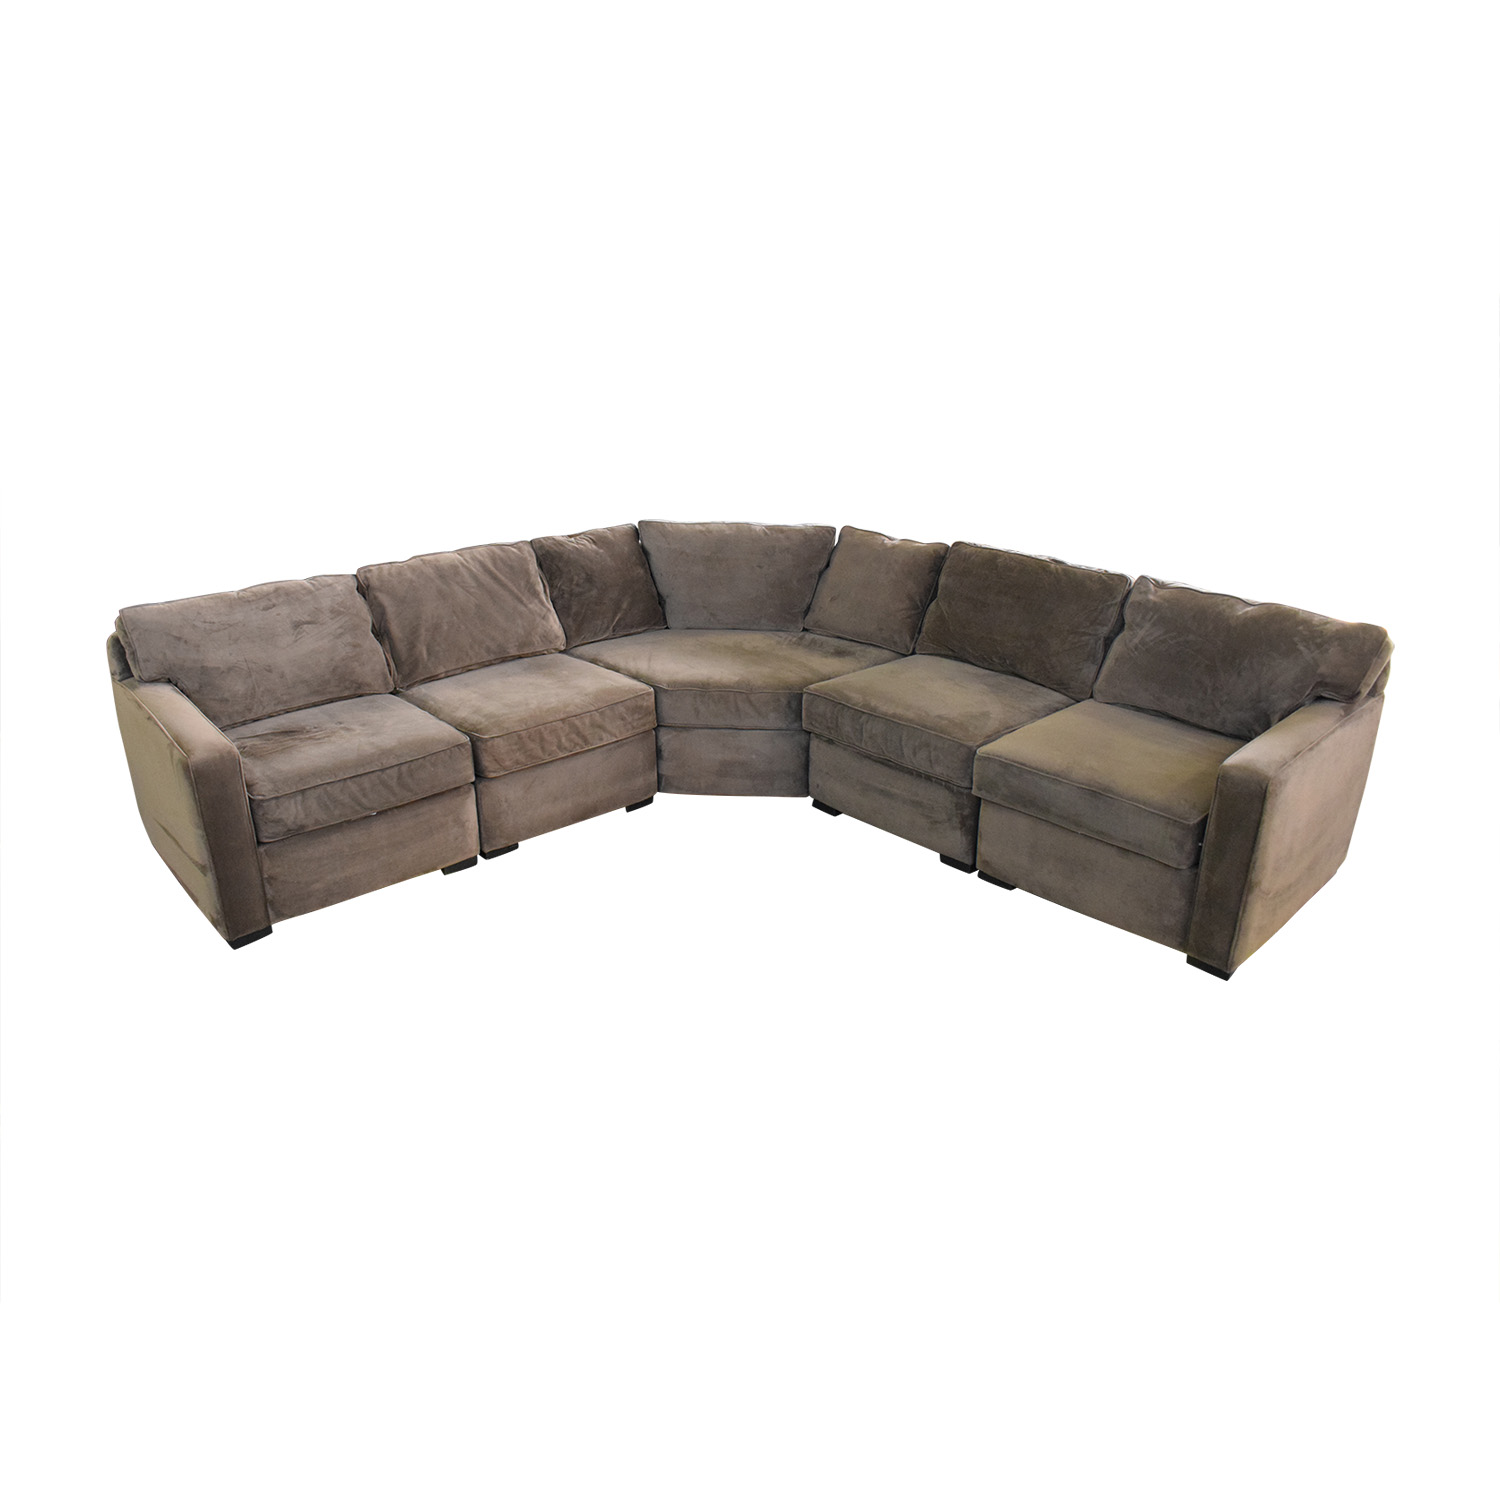 60% OFF - Macy\'s Macy\'s Sectional Sofa / Sofas